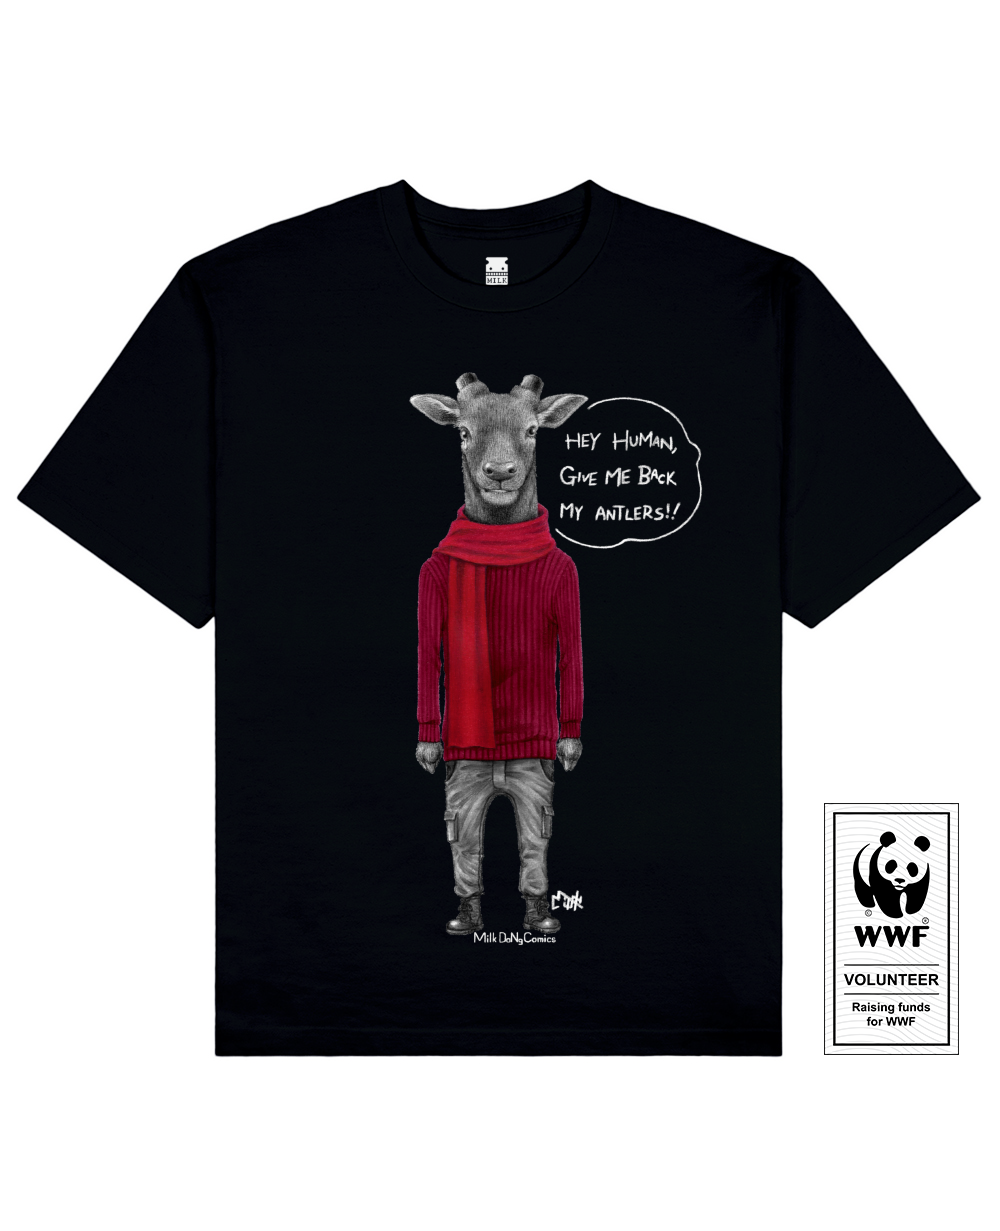 ANTLERLESS DEER Printed T-Shirt in Black - T-Shirts - Milk DoNg Comics - BRANMA